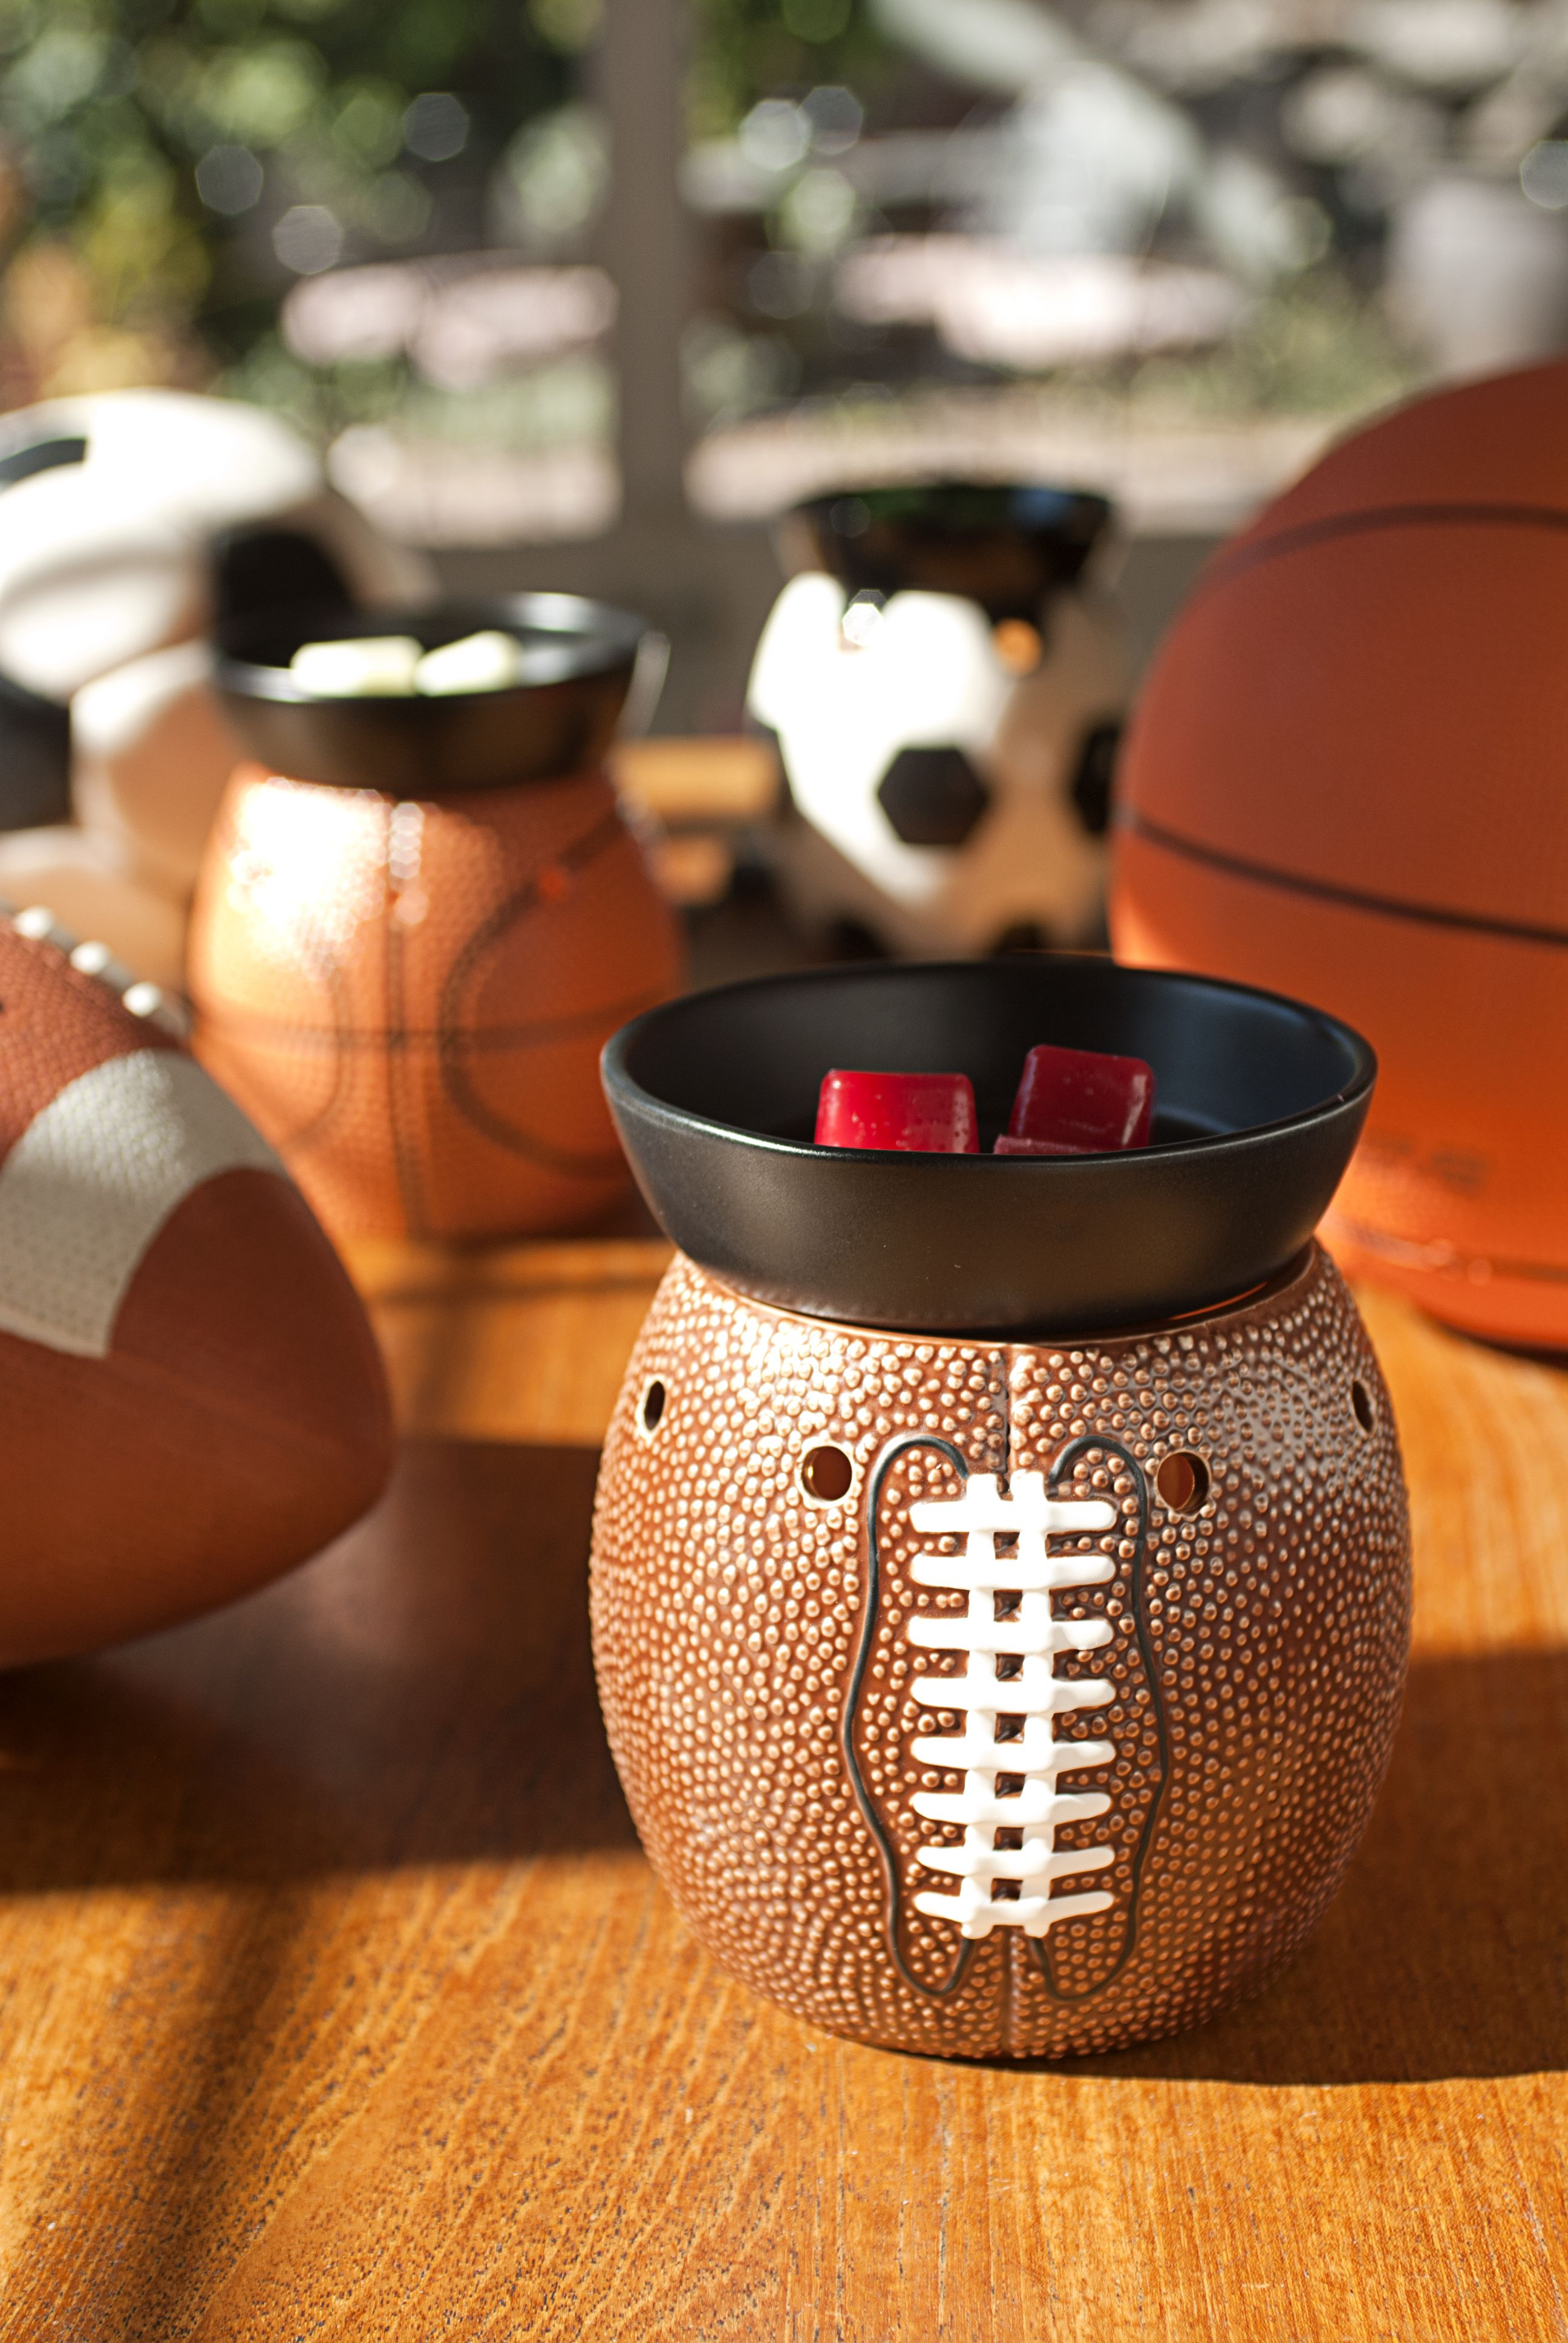 Game Day Warmer From Scentsy Scentsy Scentsy Warmer Candle Wax Warmer